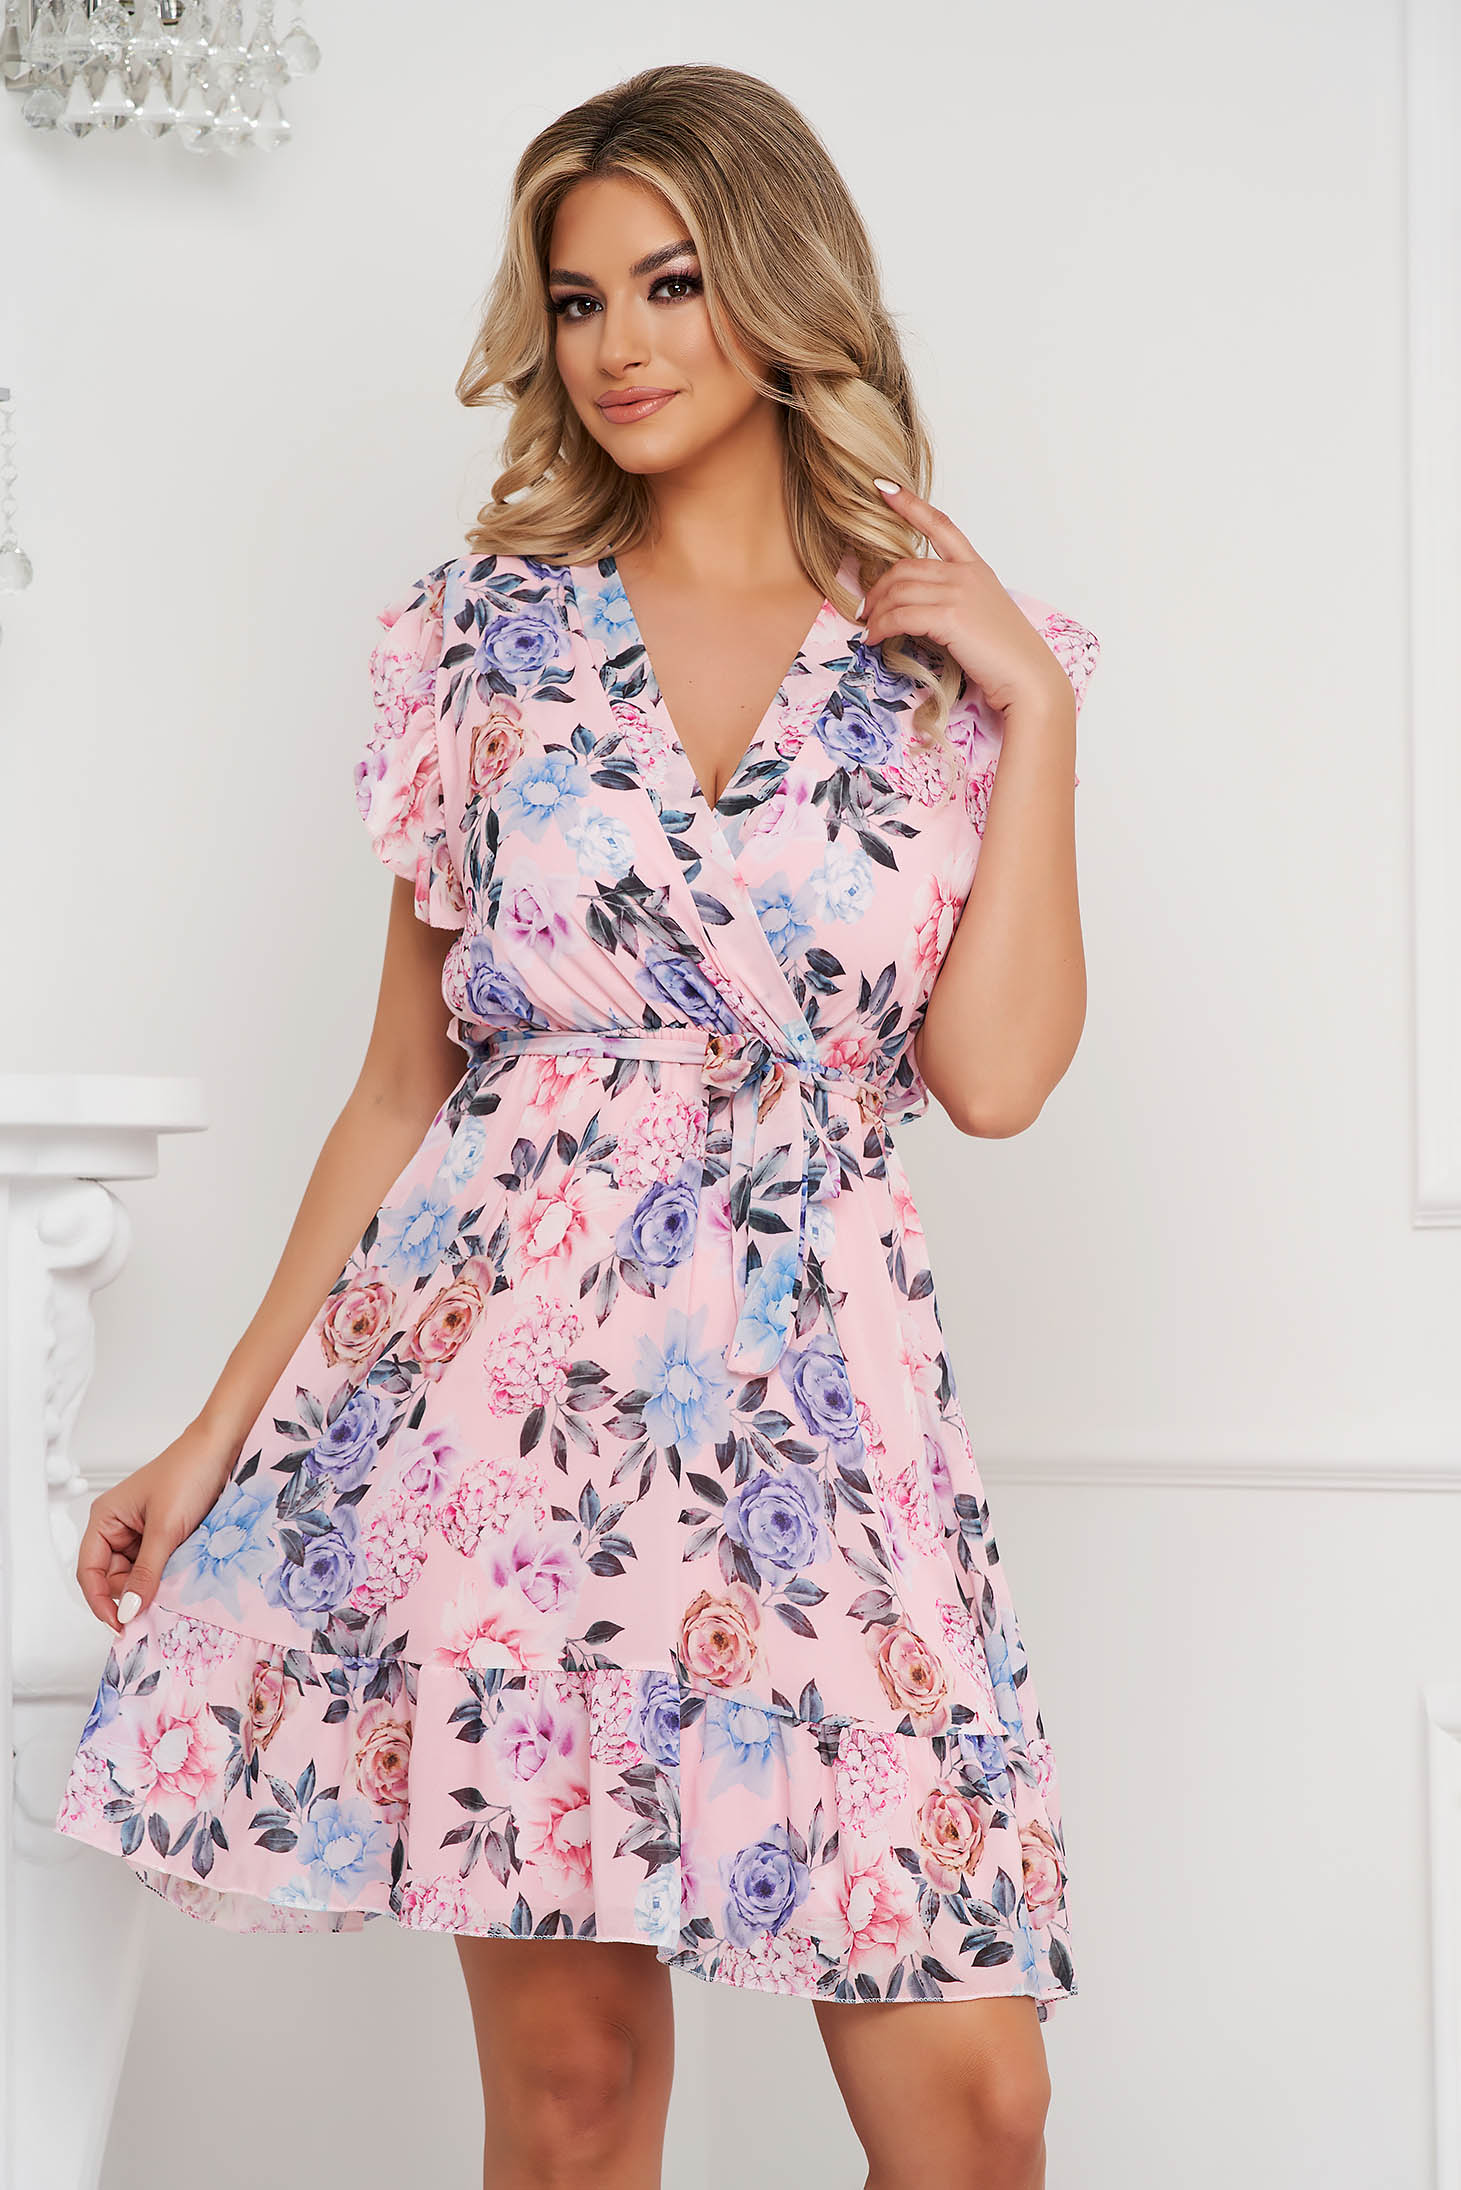 Pink dress short cut airy fabric with ruffle details